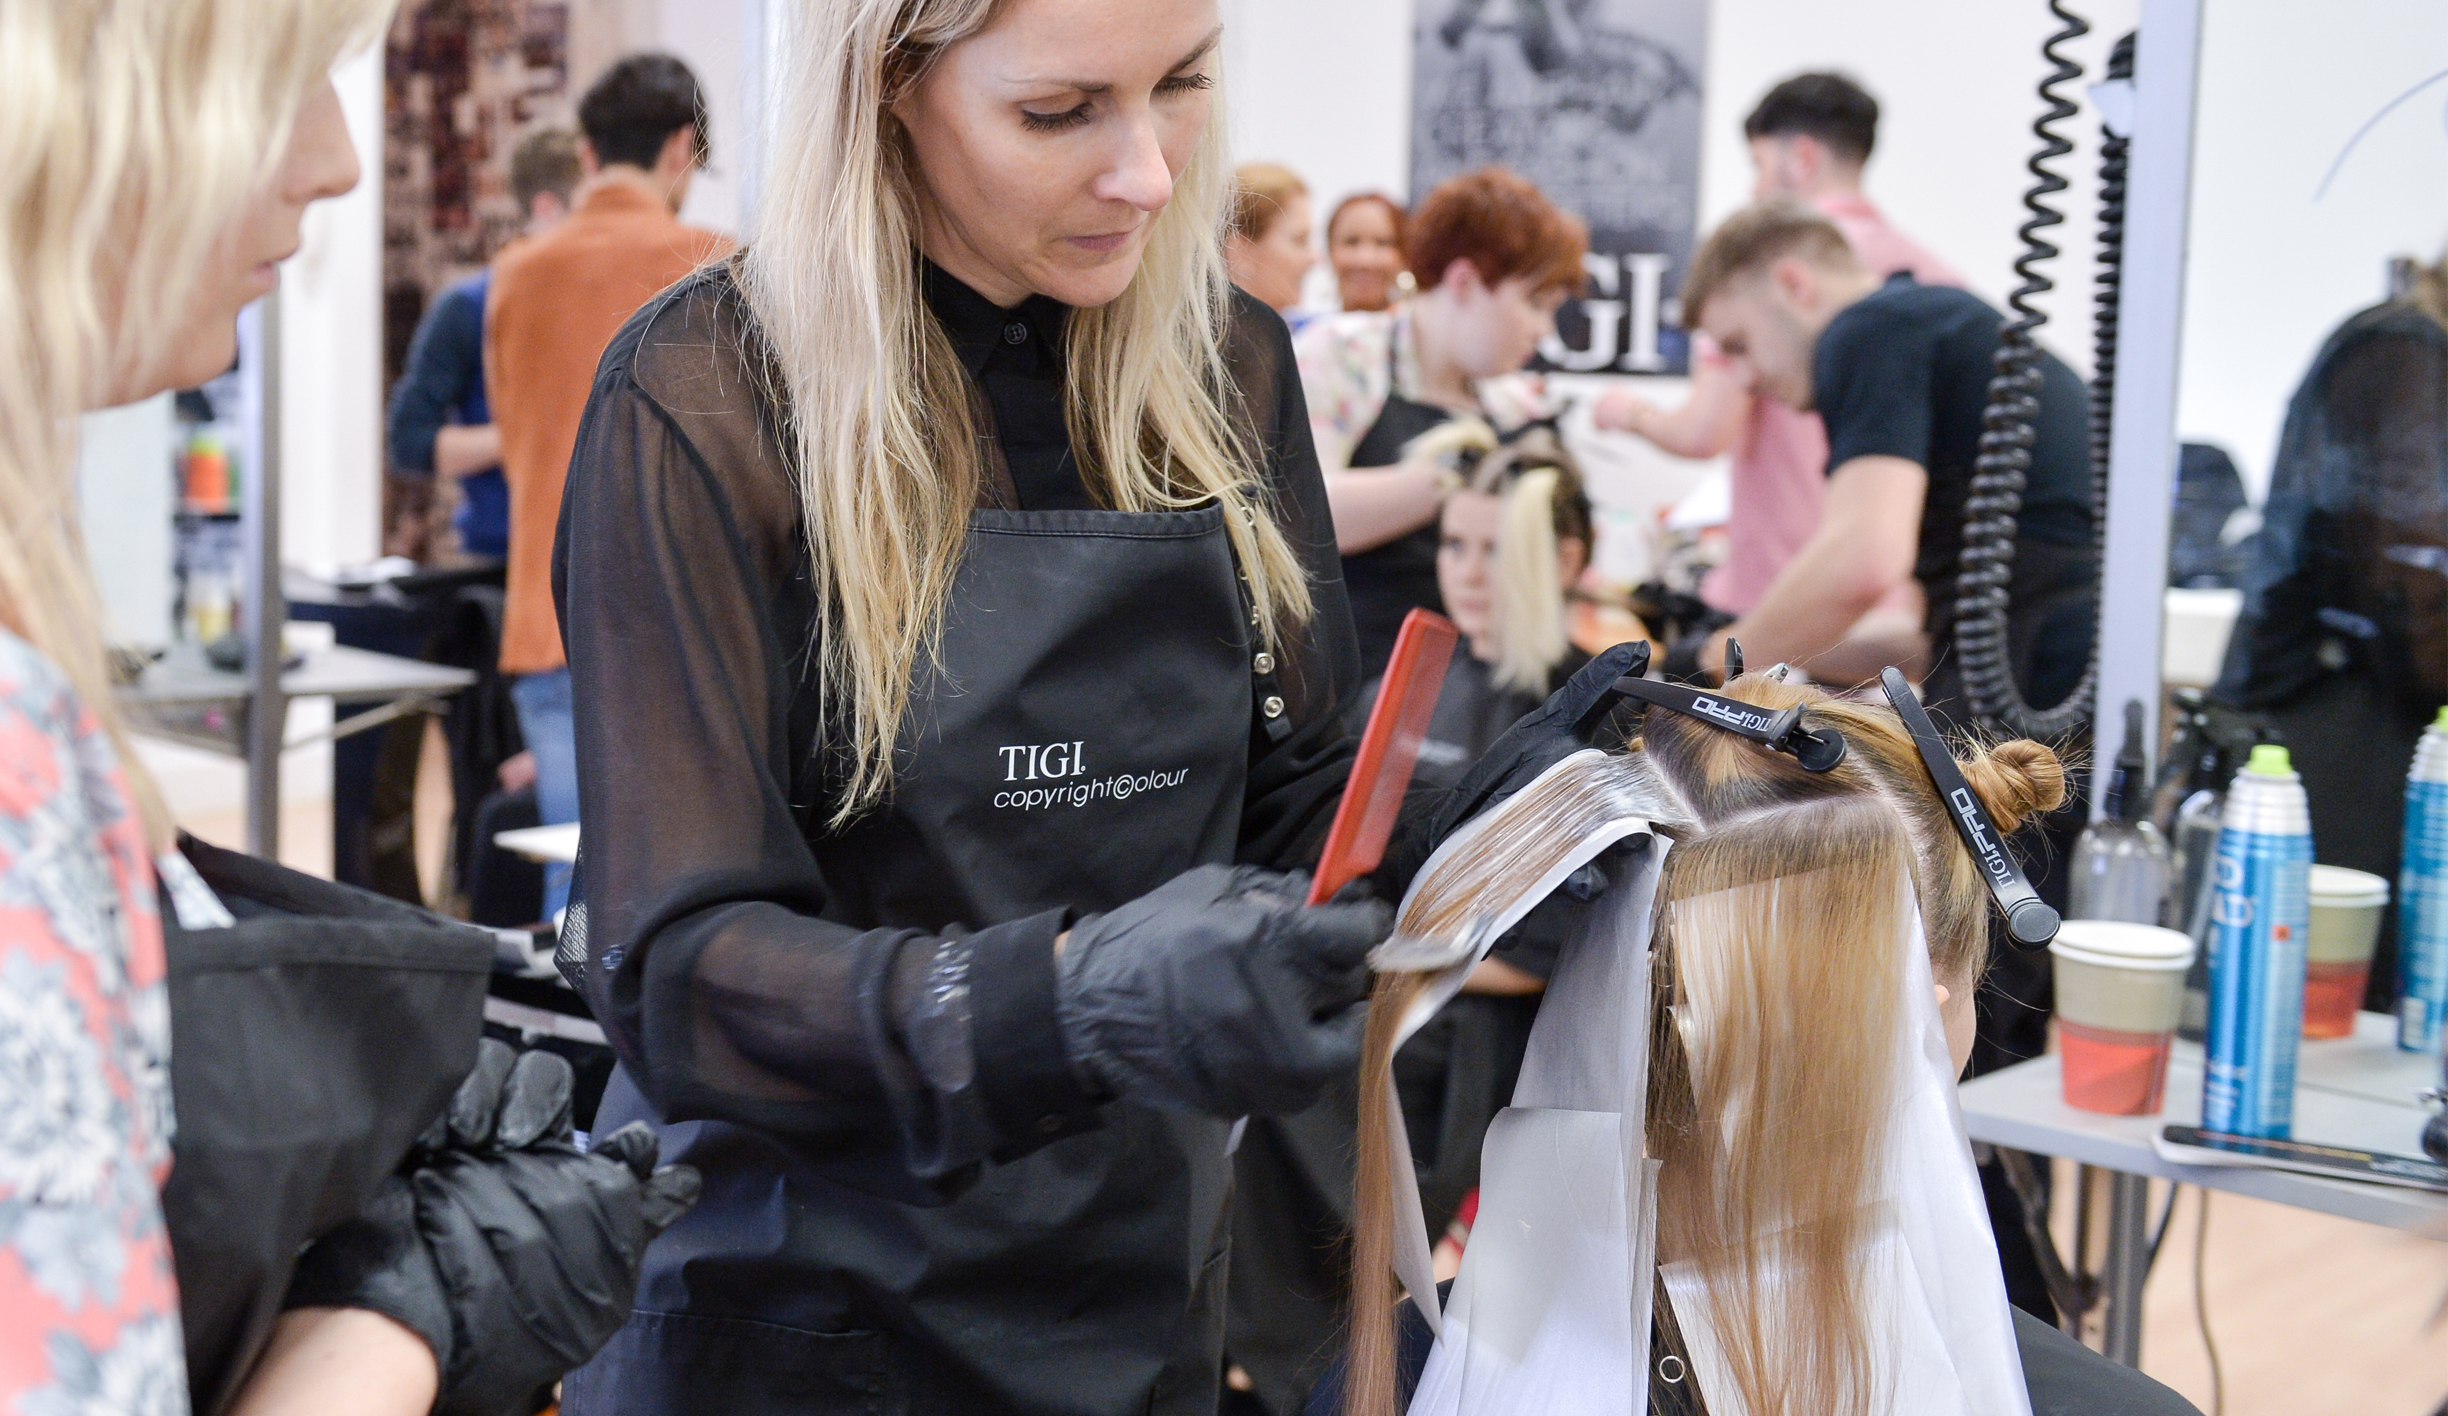 Welcome to tigi copyrightolour by hairdressers for hairdressers nvjuhfo Choice Image